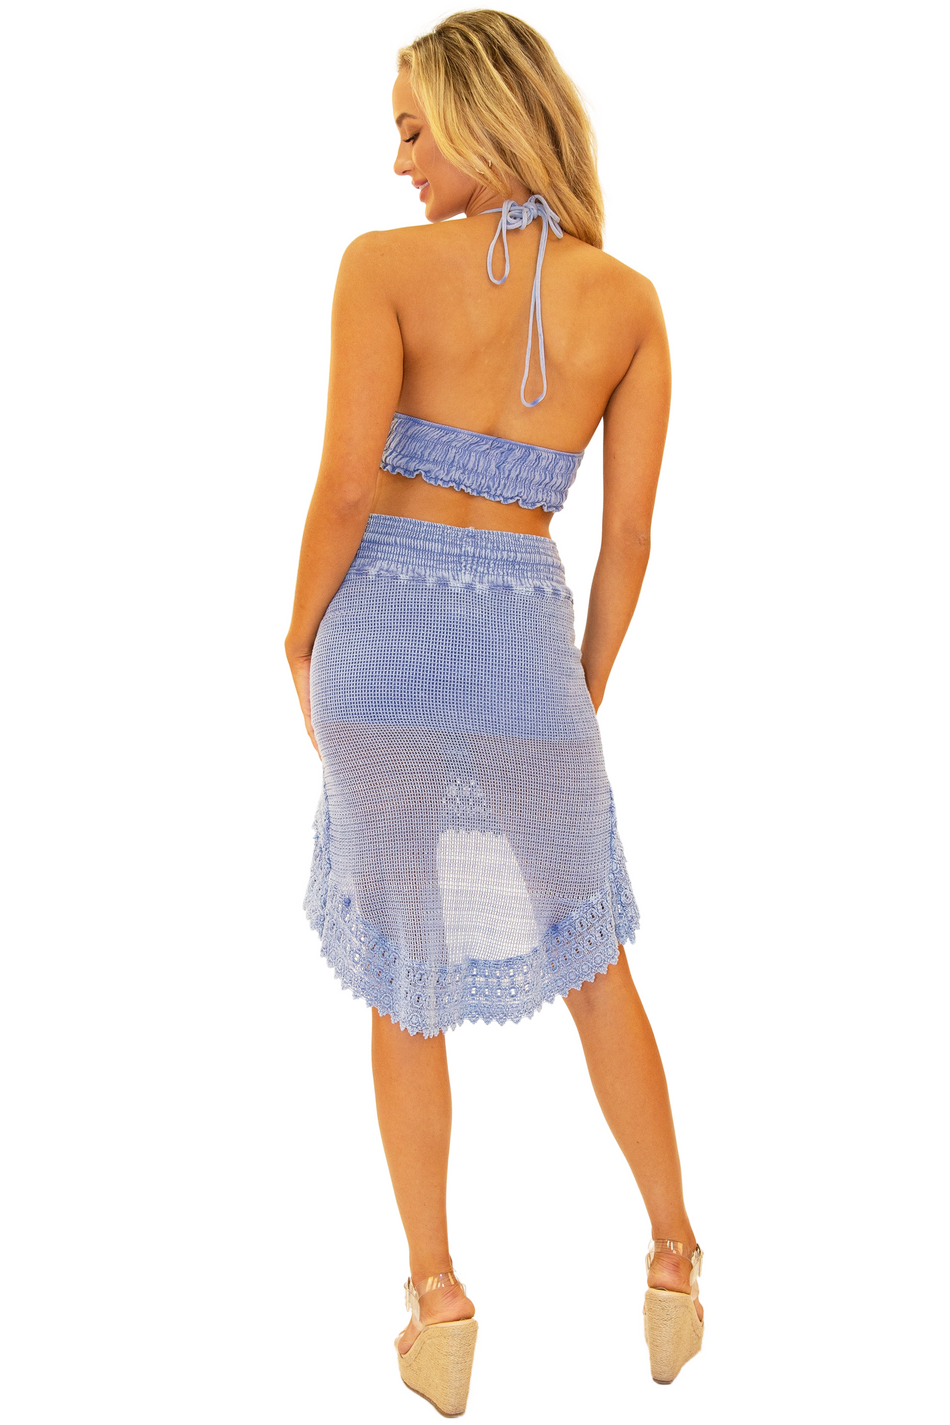 NW1057 - Blue Cotton Skirt